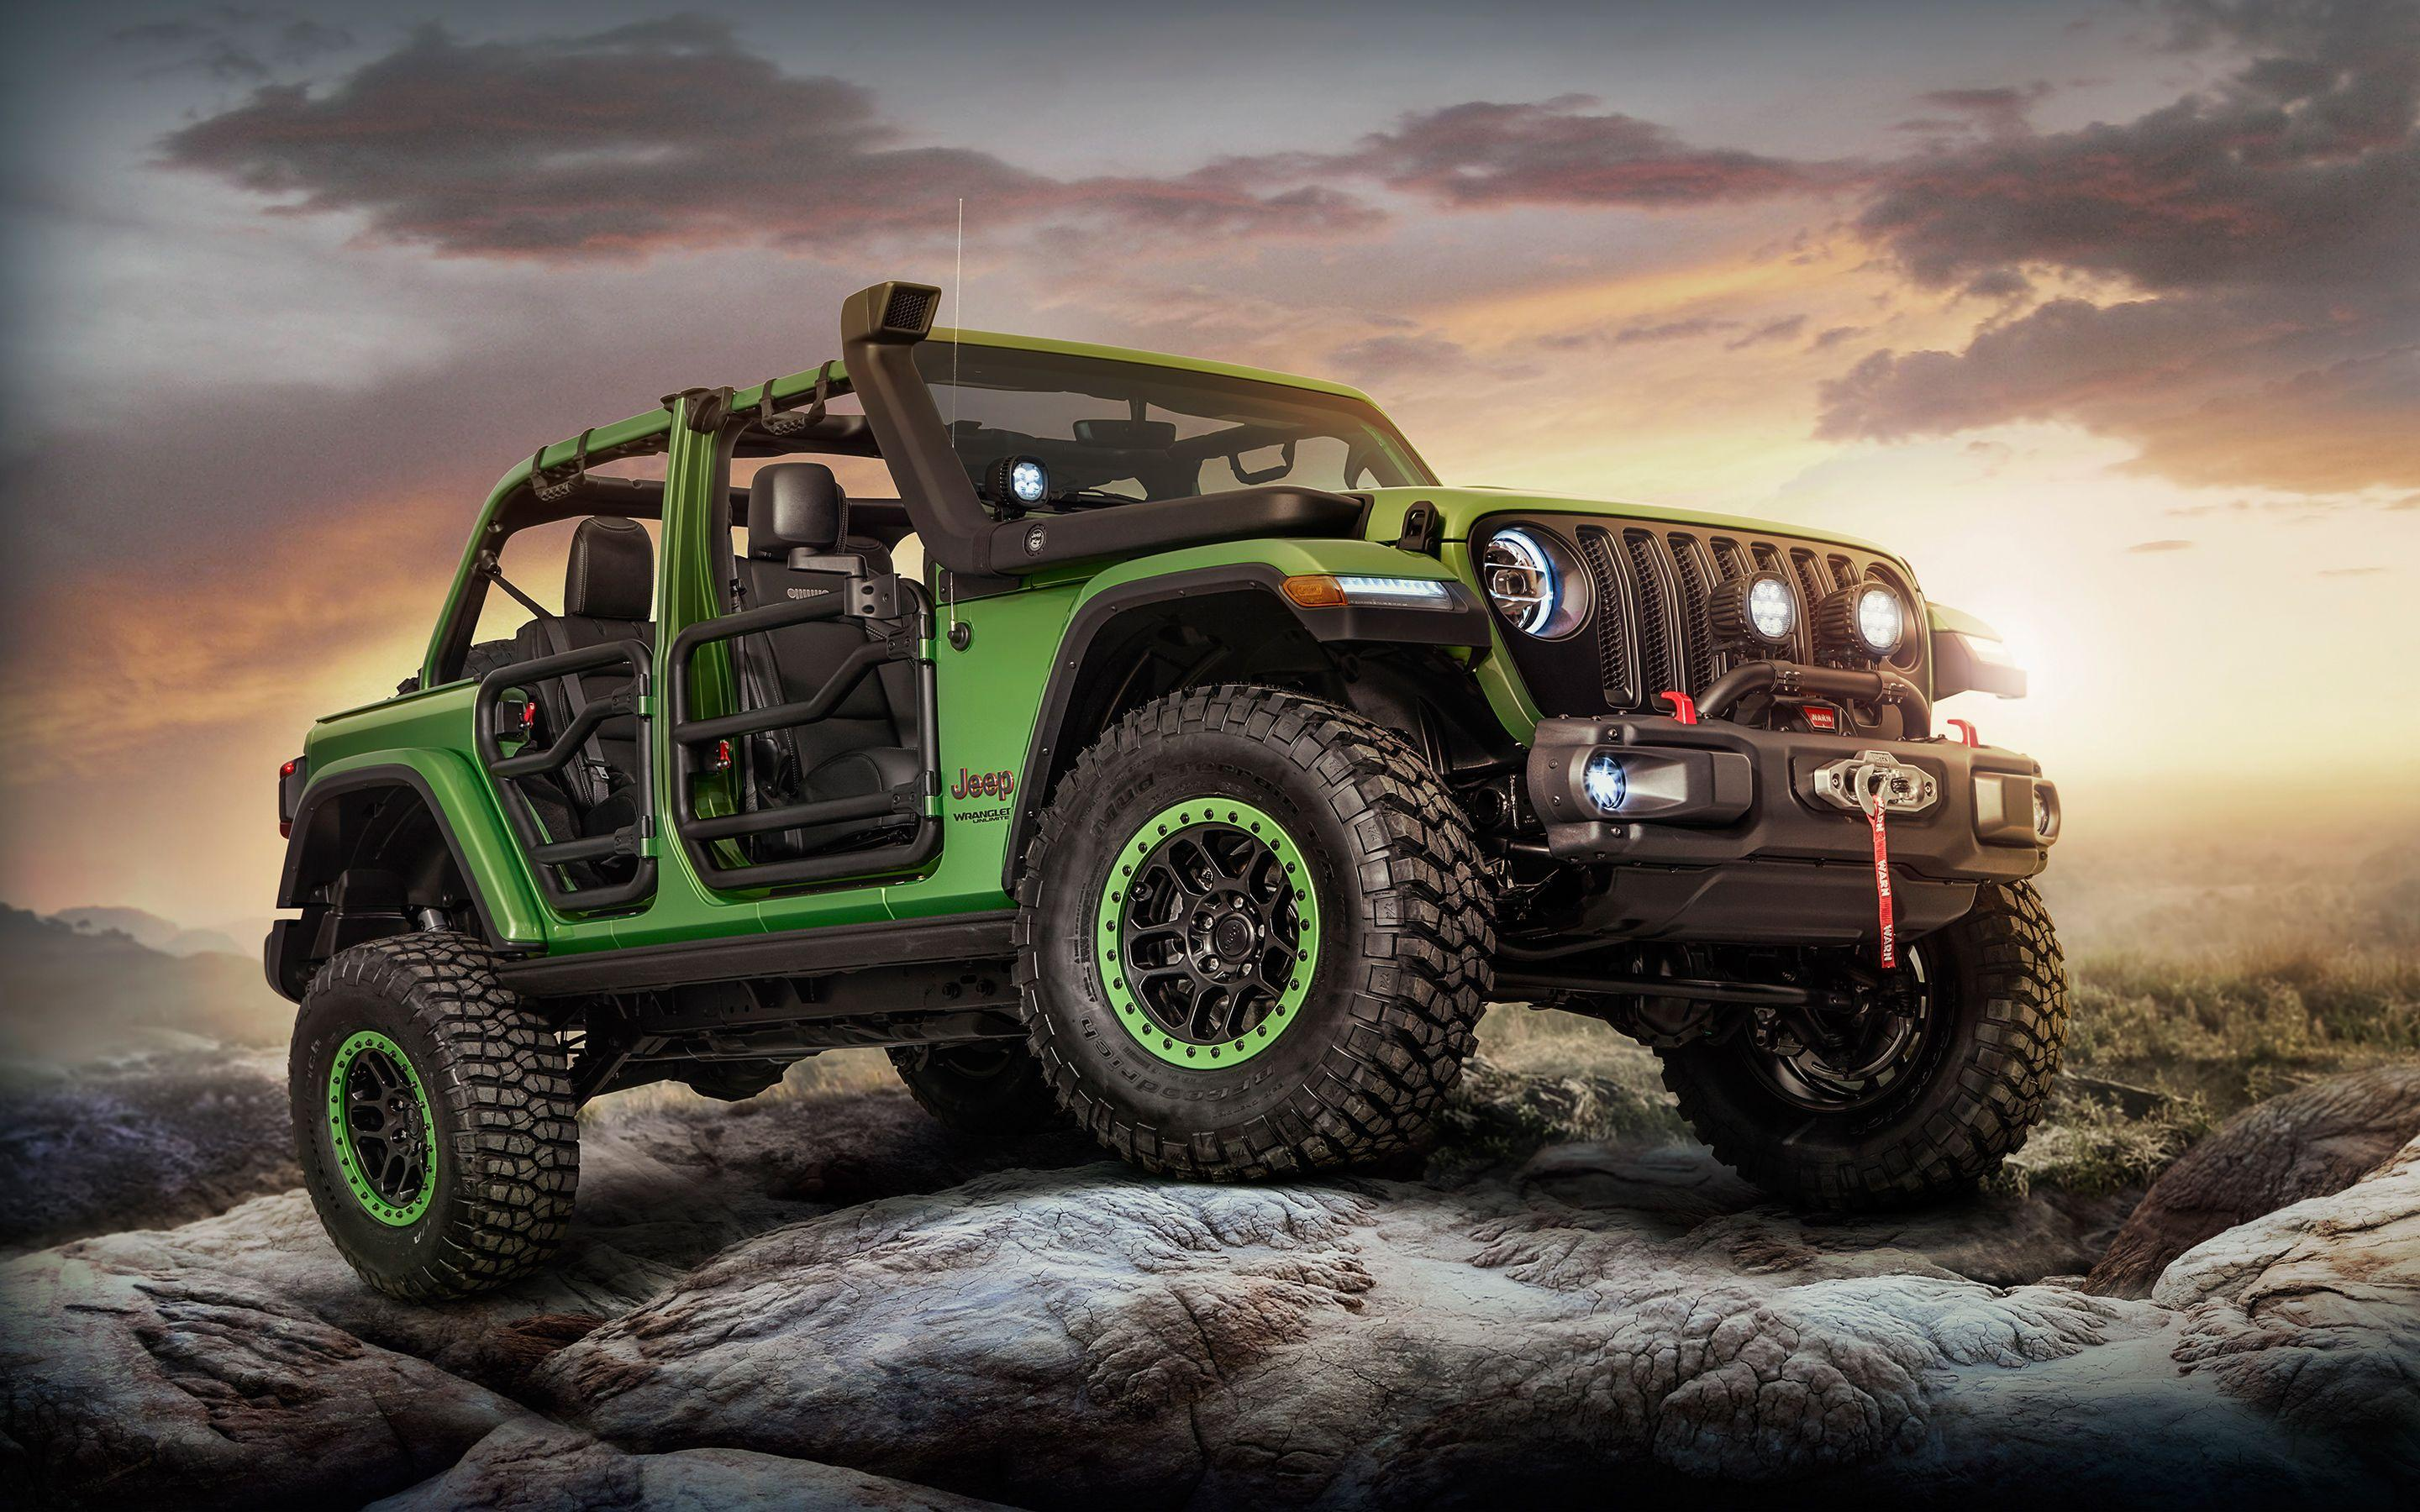 Jeep Wrangler Unlimited Rubicon Moparized 2018 4K Wallpapers